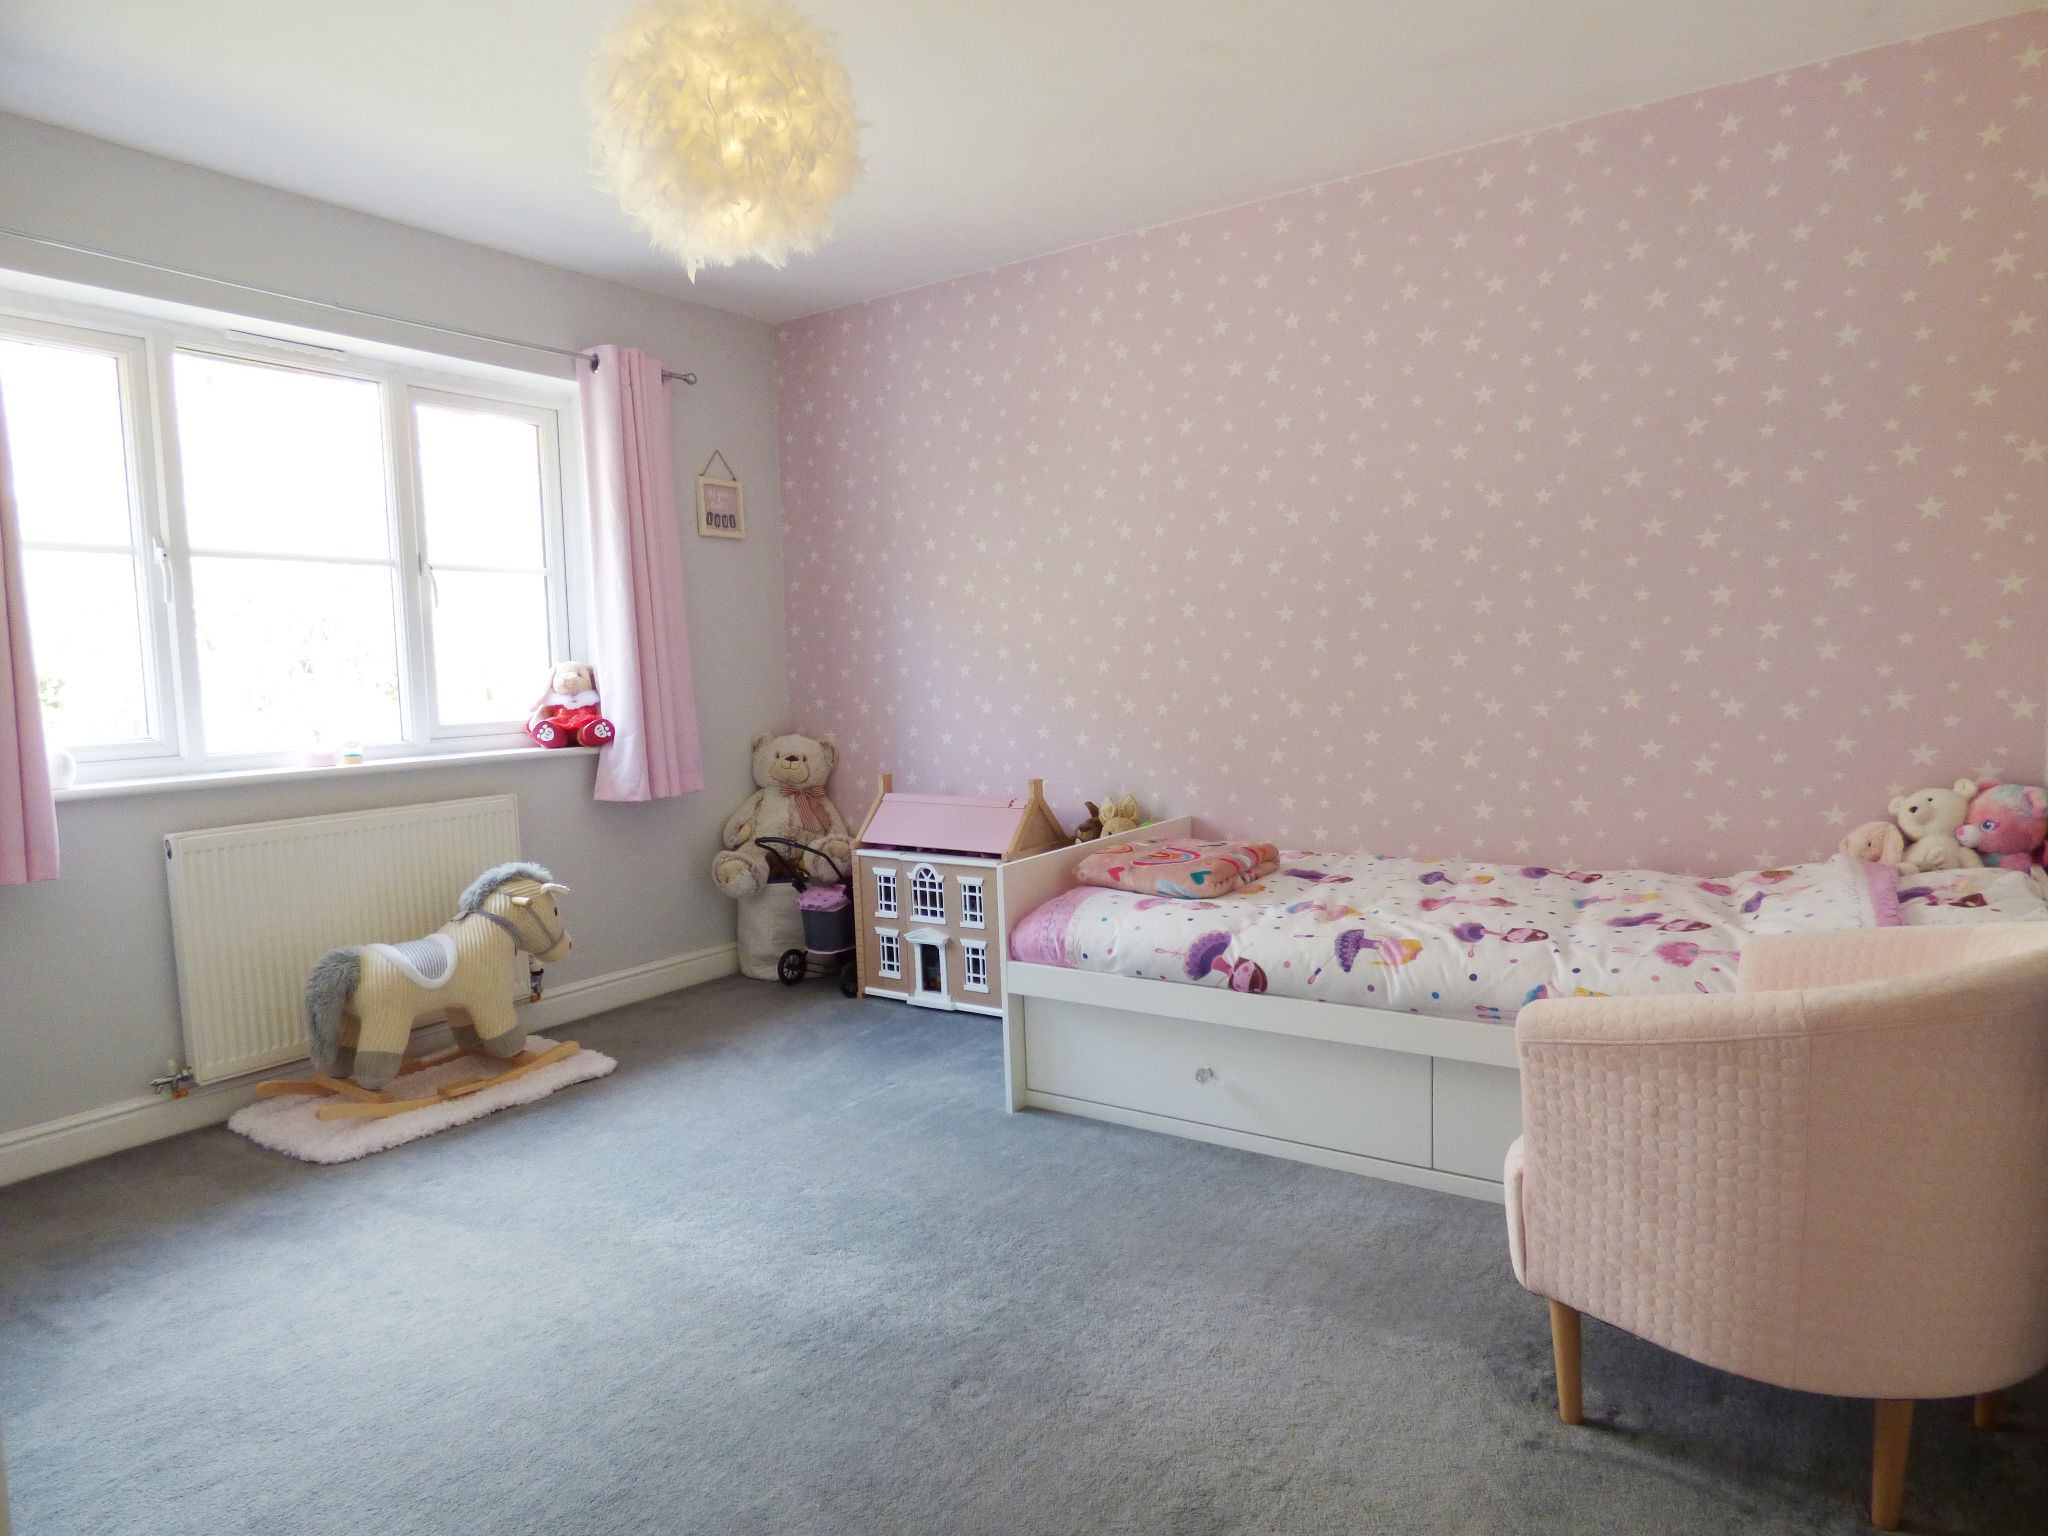 4 Bedroom Semi-detached House For Sale - Bedroom Two